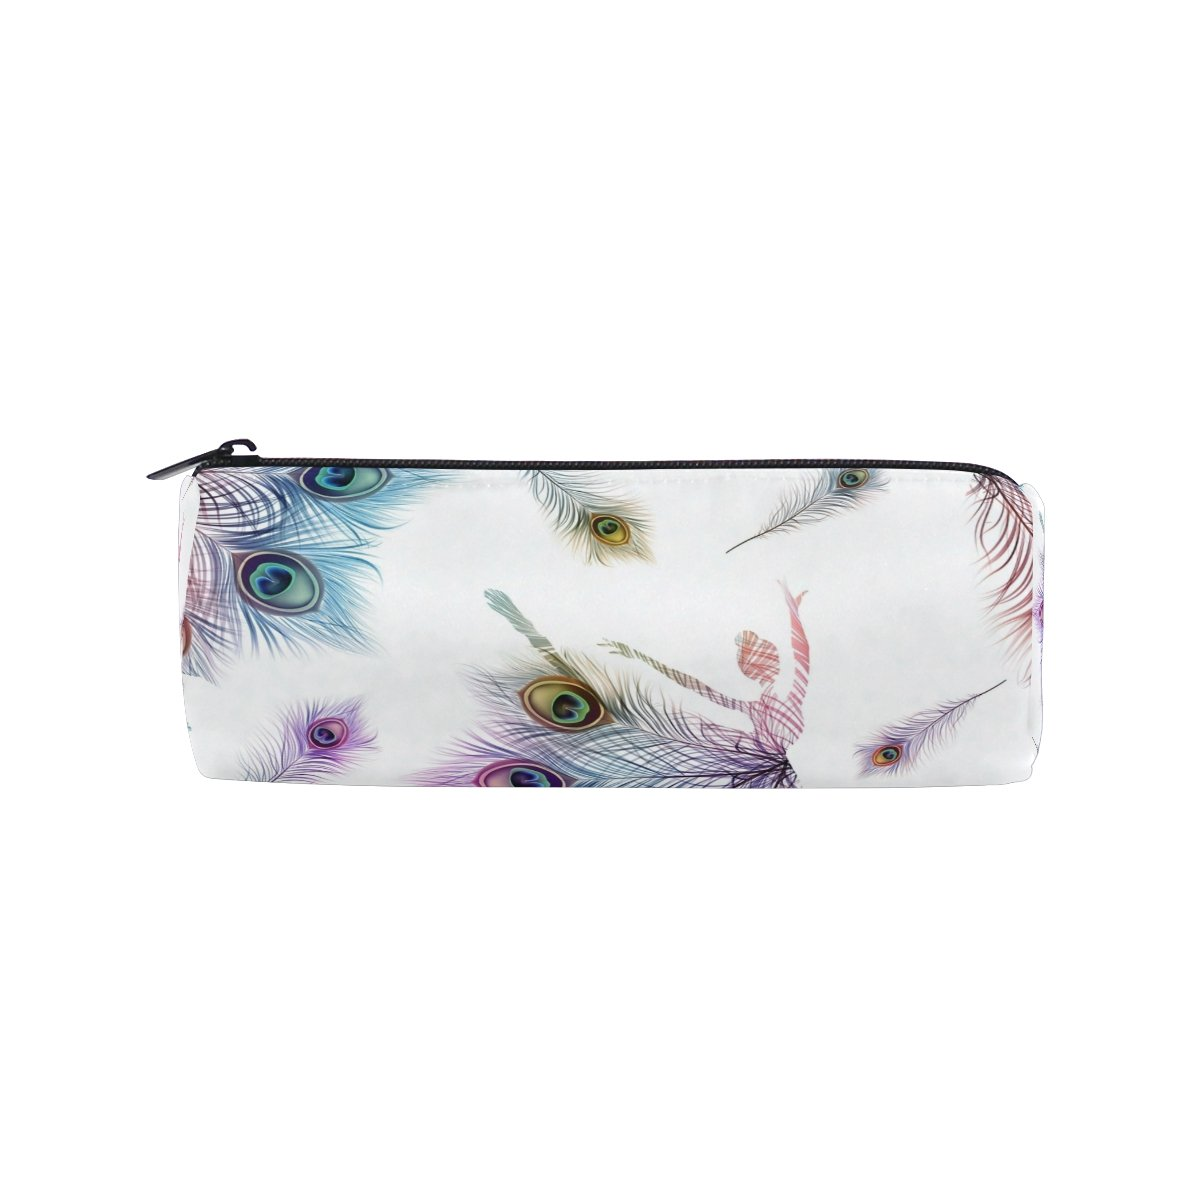 Cooper Girl Watercolor Peacock Feather Pencil Bag Pen Case Students Stationery Pouch Zipper Bag for Girls Boys Kids